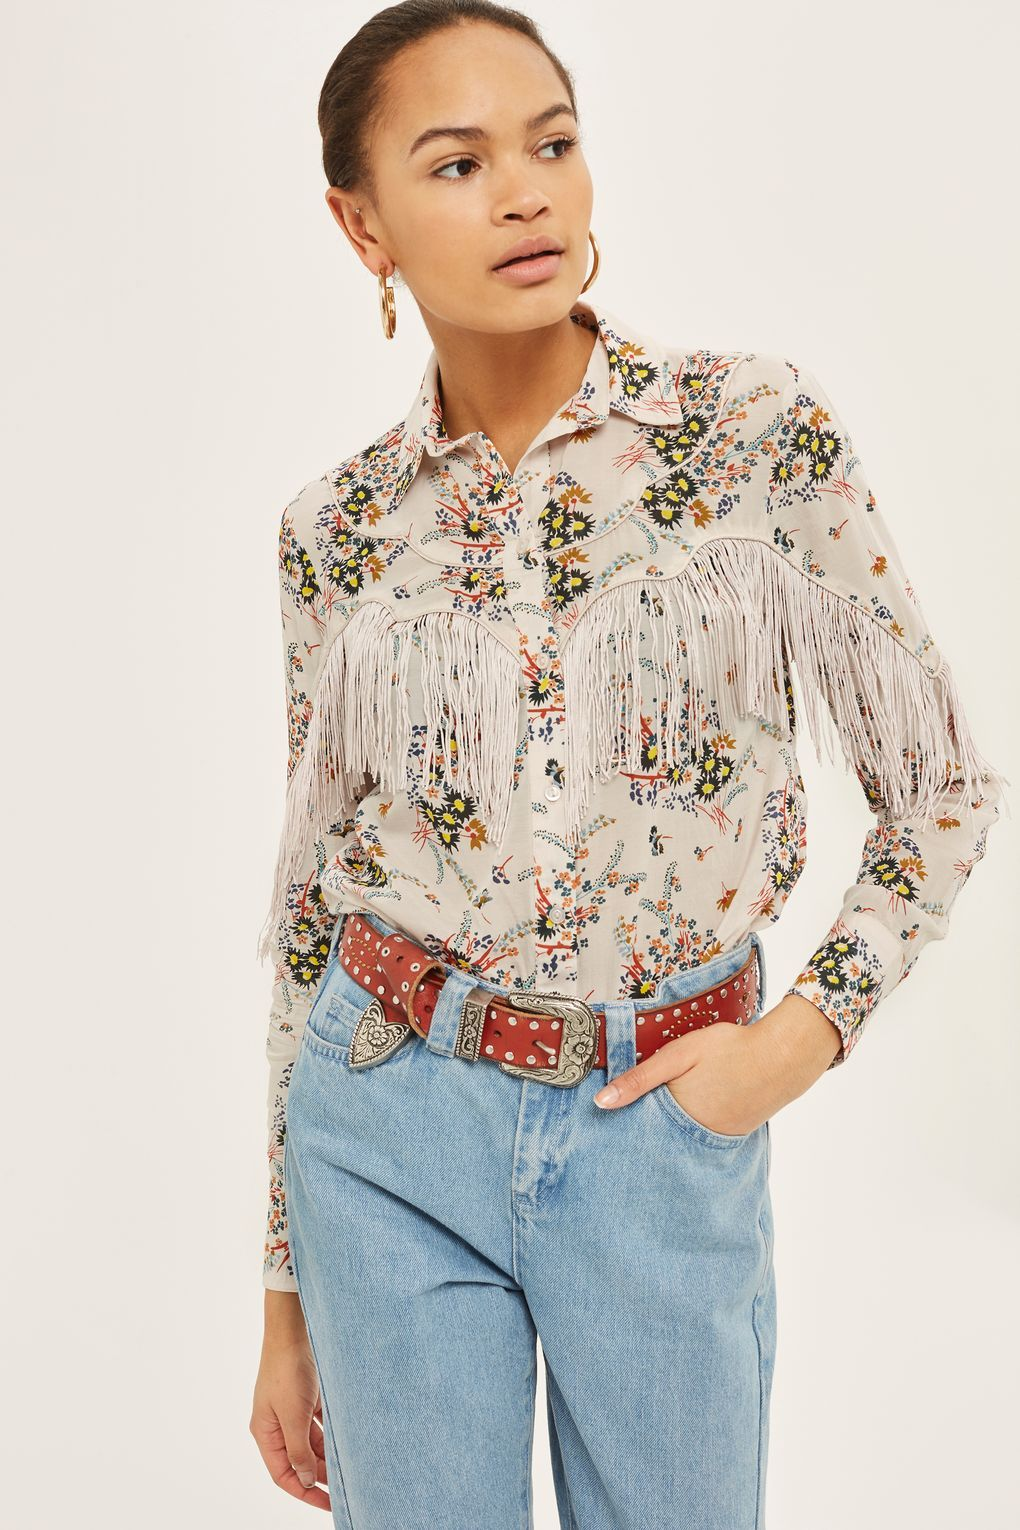 c4d3f8004846d1 Rodeo Fringe Floral Shirt | Western style clothing | Floral print ...